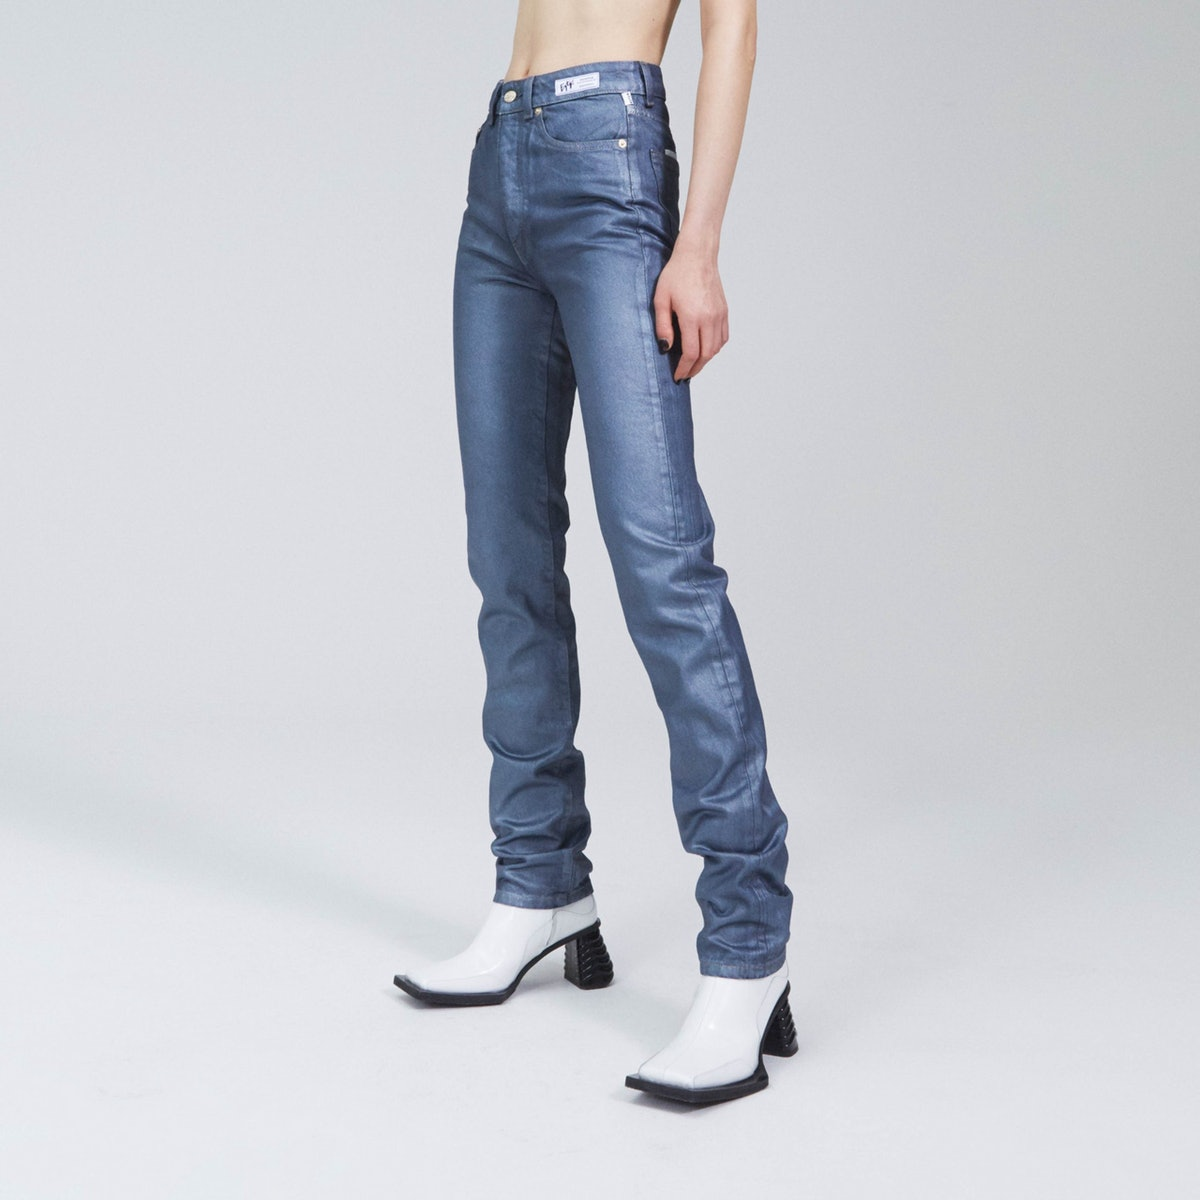 Eytys Solstice Jeans